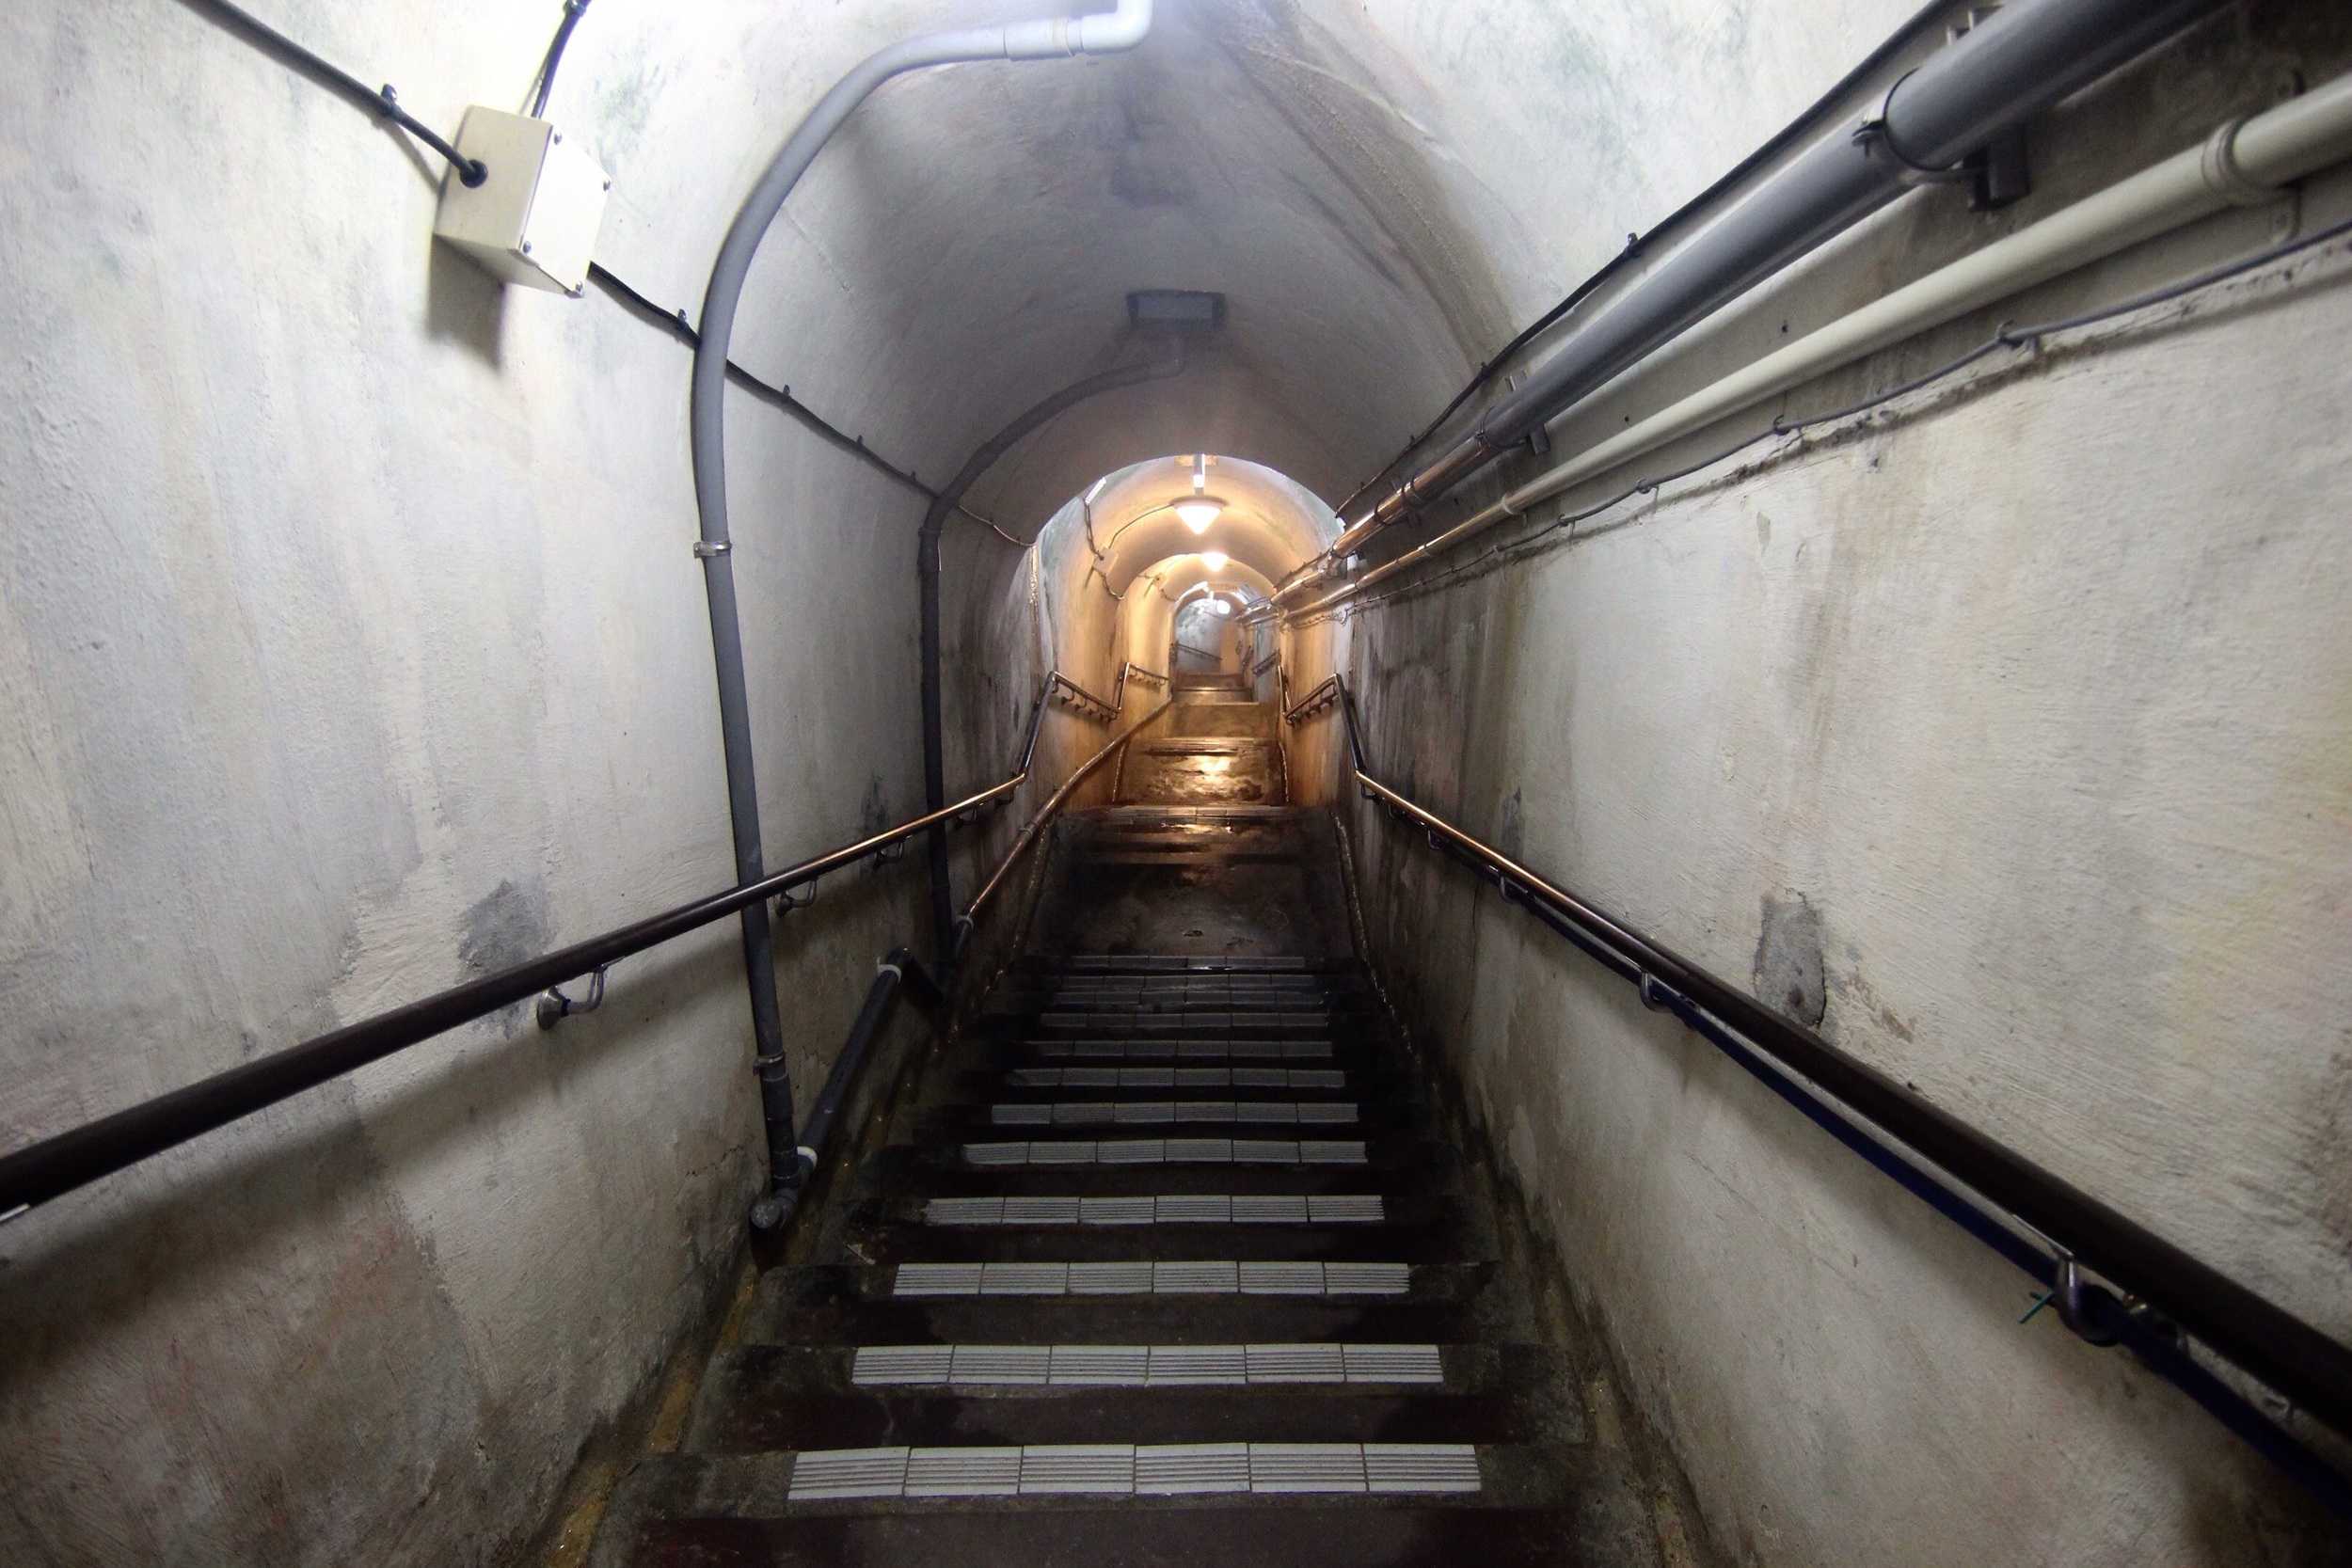 The entrance to the tunnels.